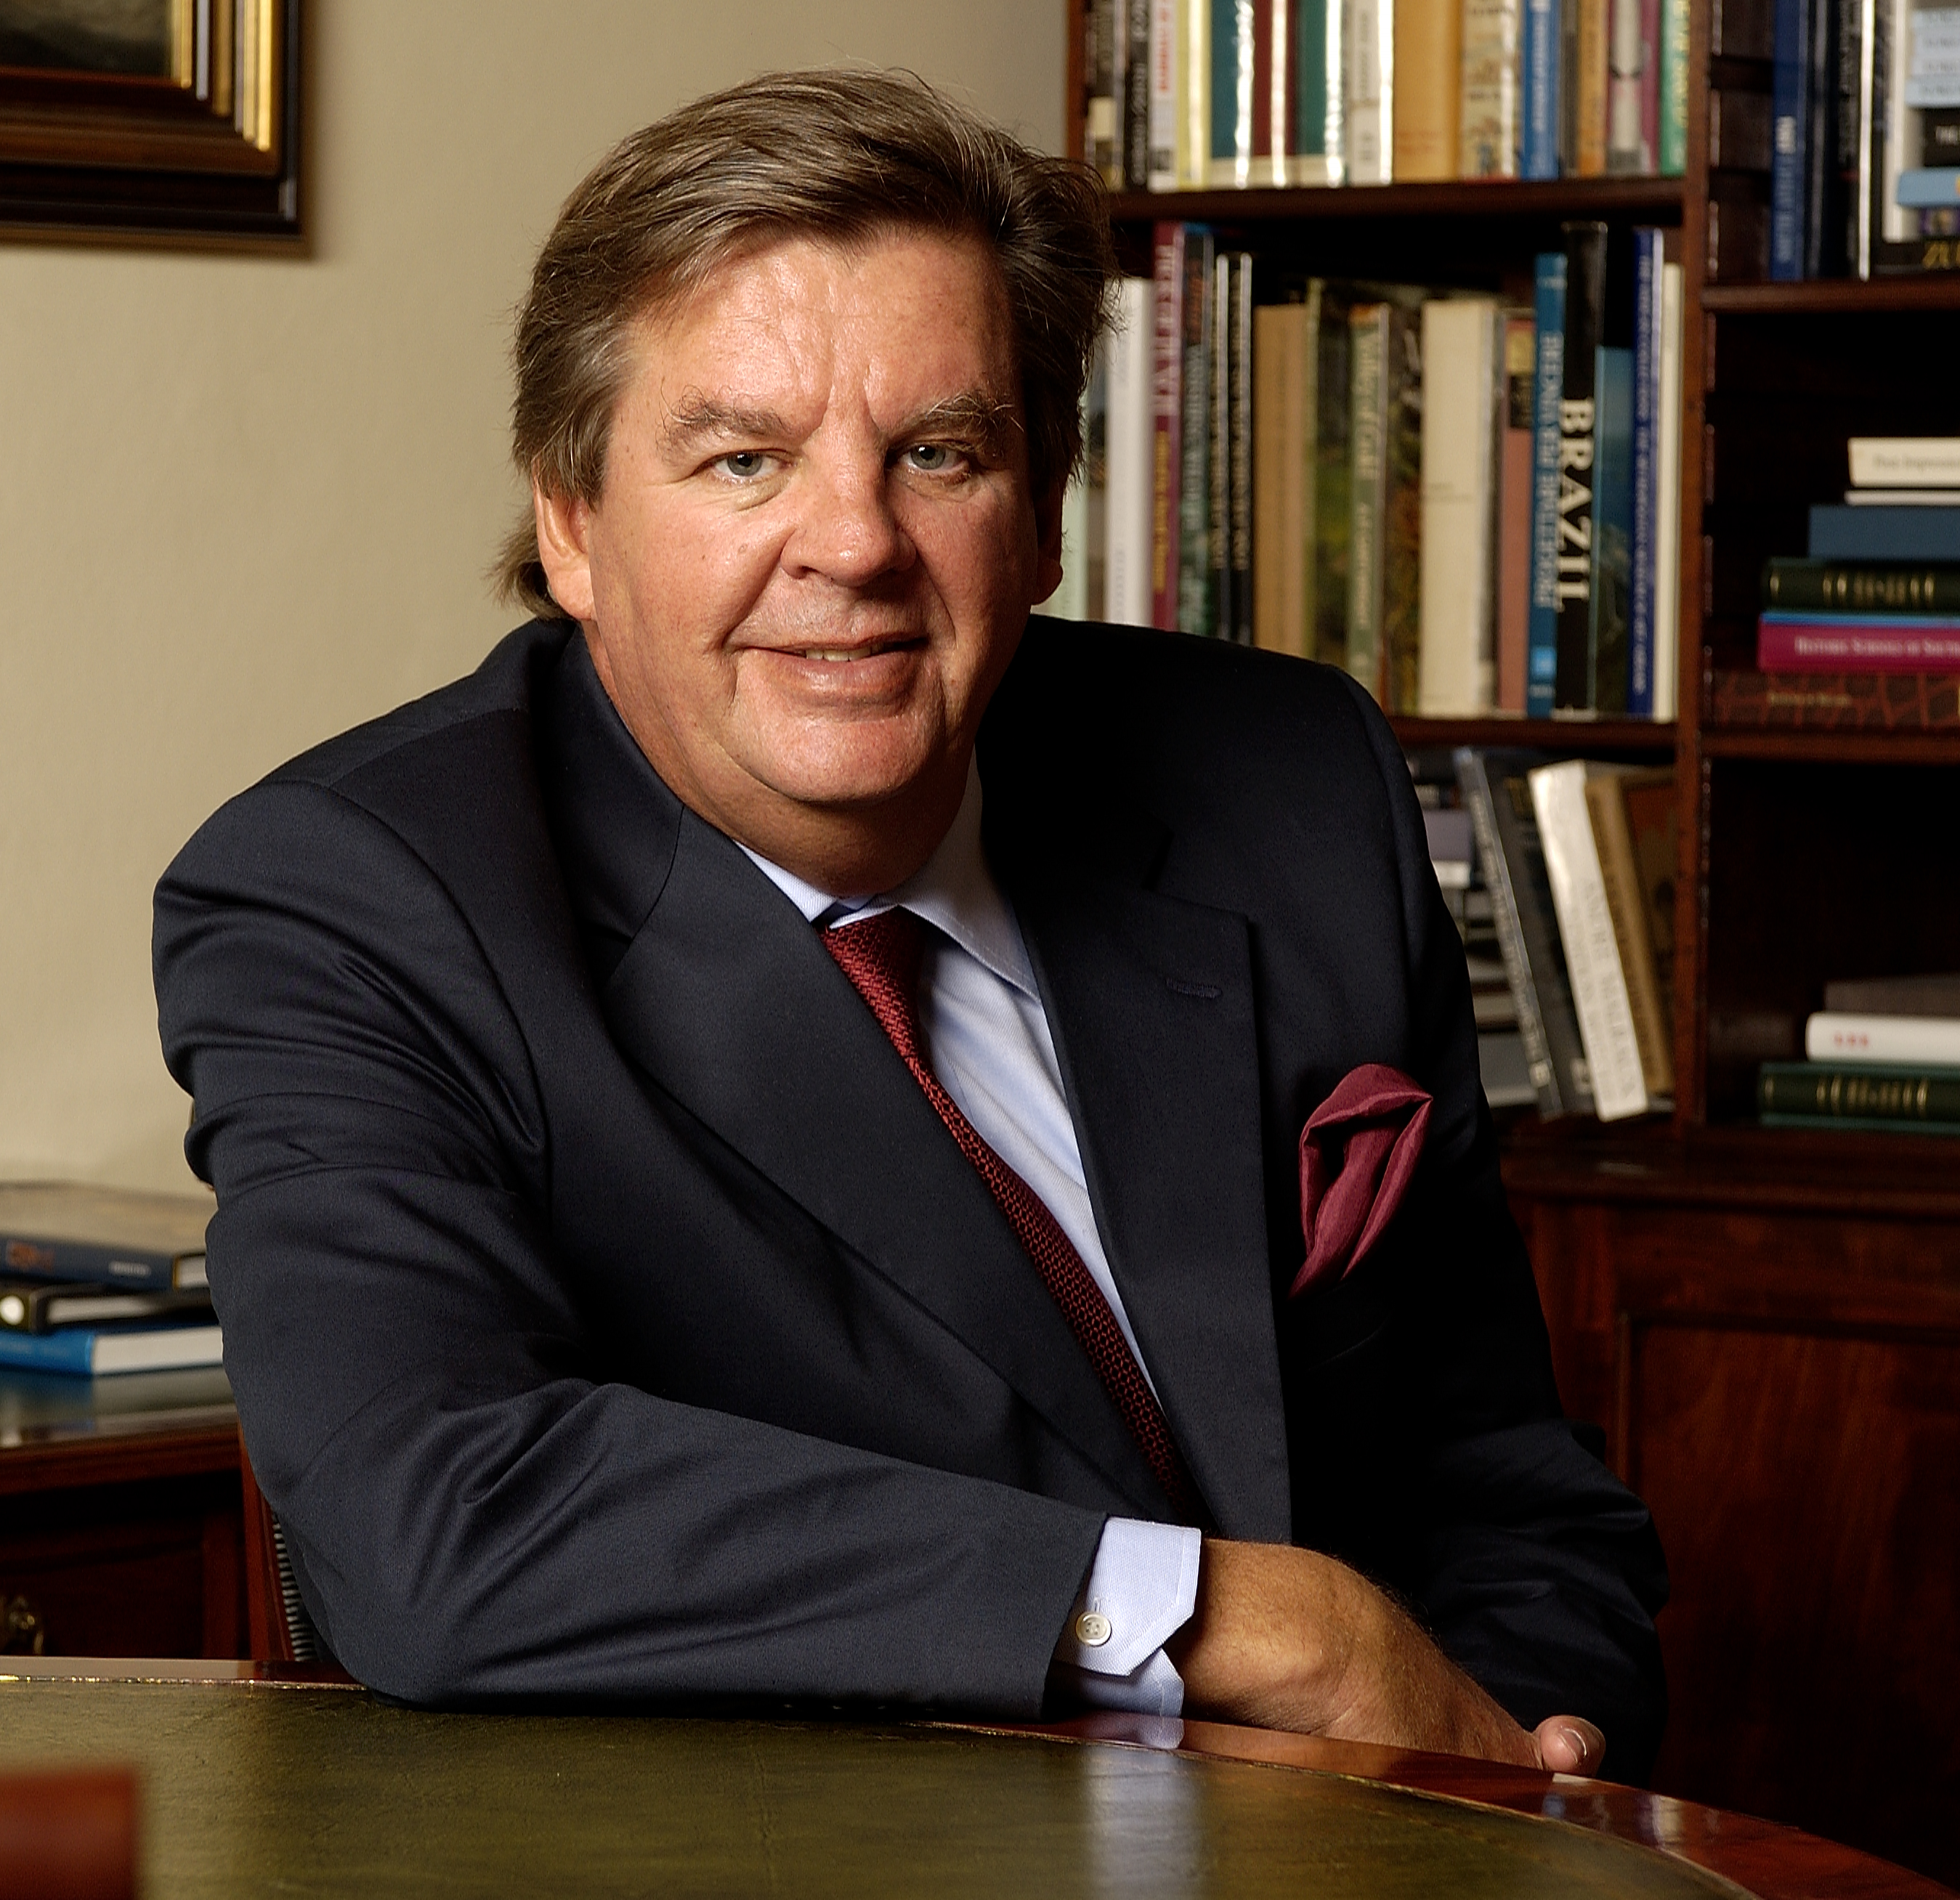 Johann Rupert earned a  million dollar salary, leaving the net worth at 7300 million in 2017